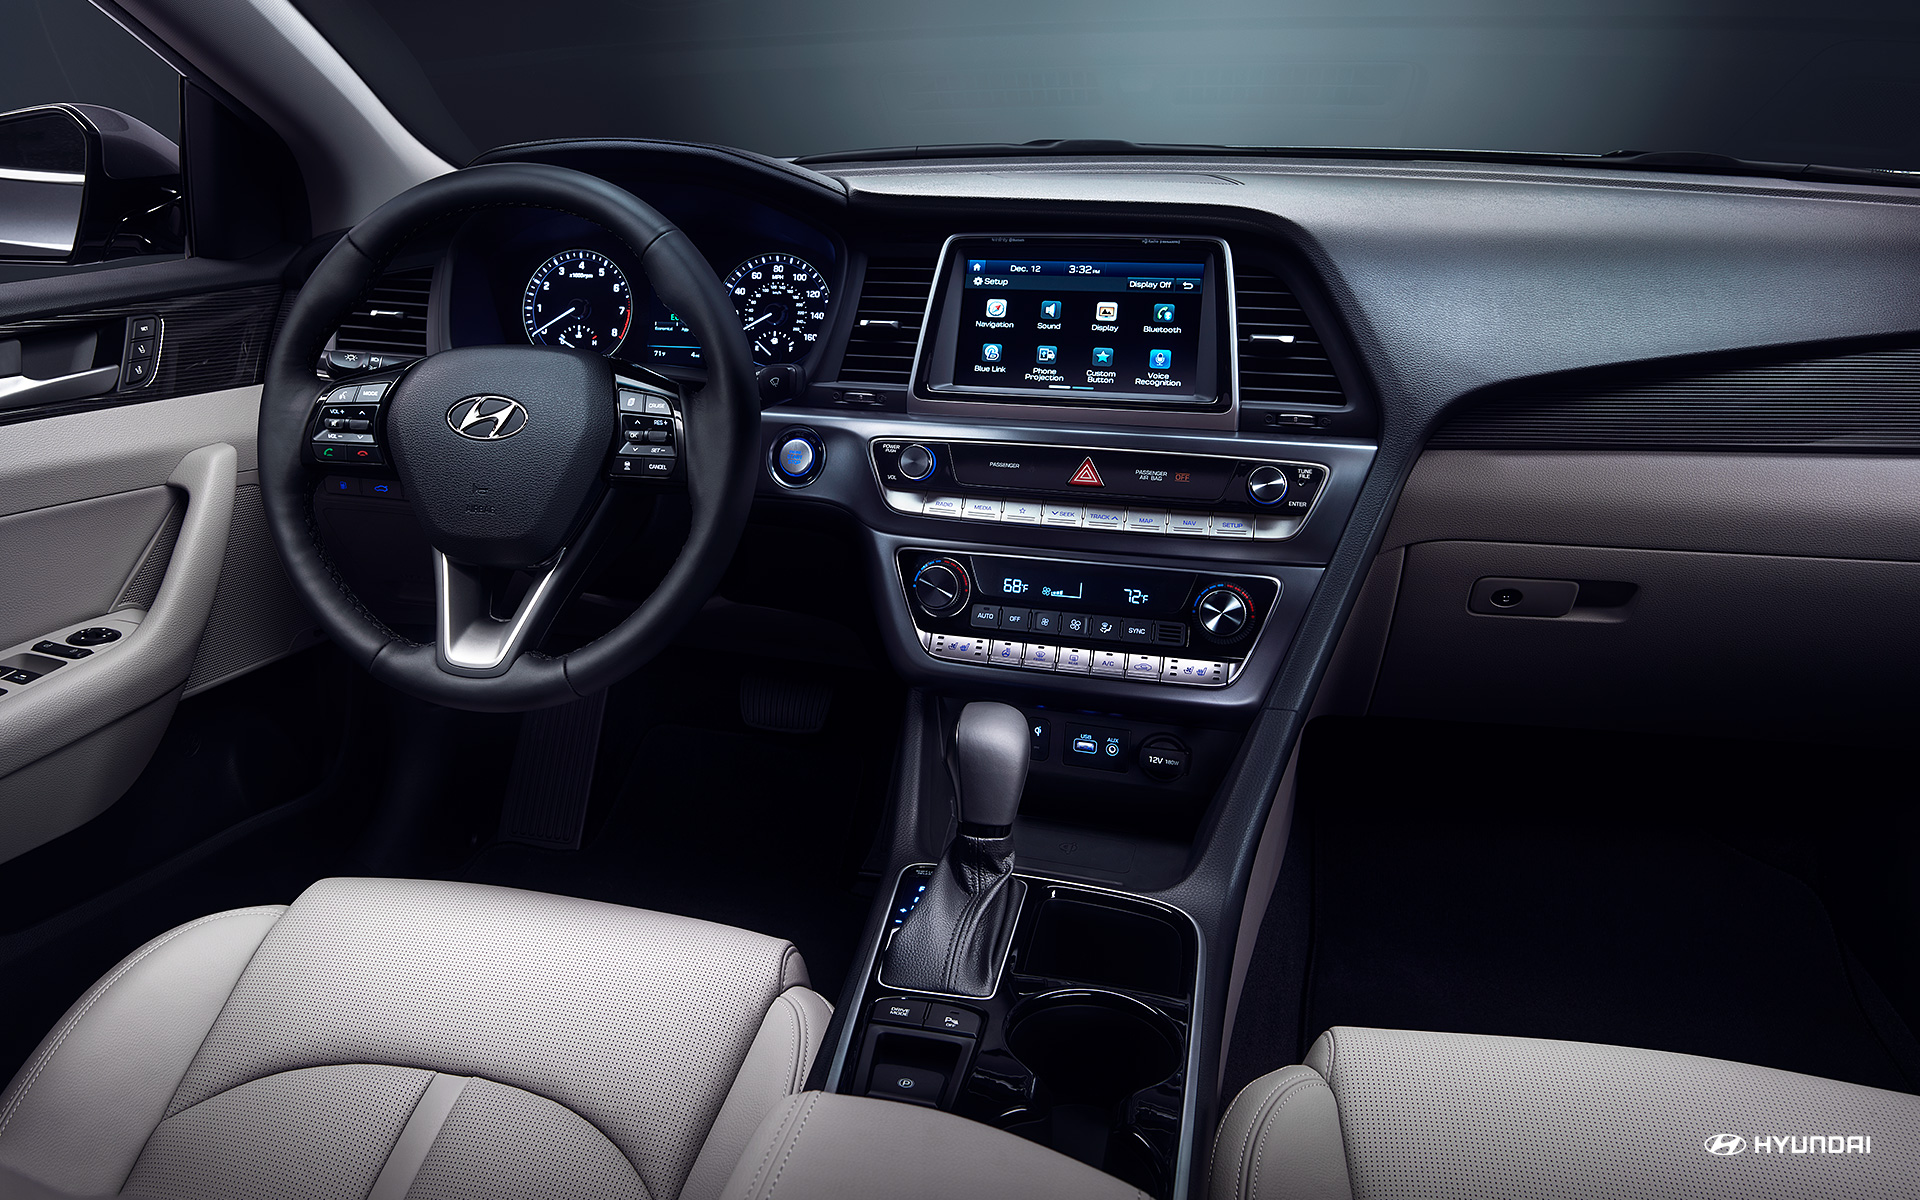 2018 Hyundai Sonata Dashboard Interior